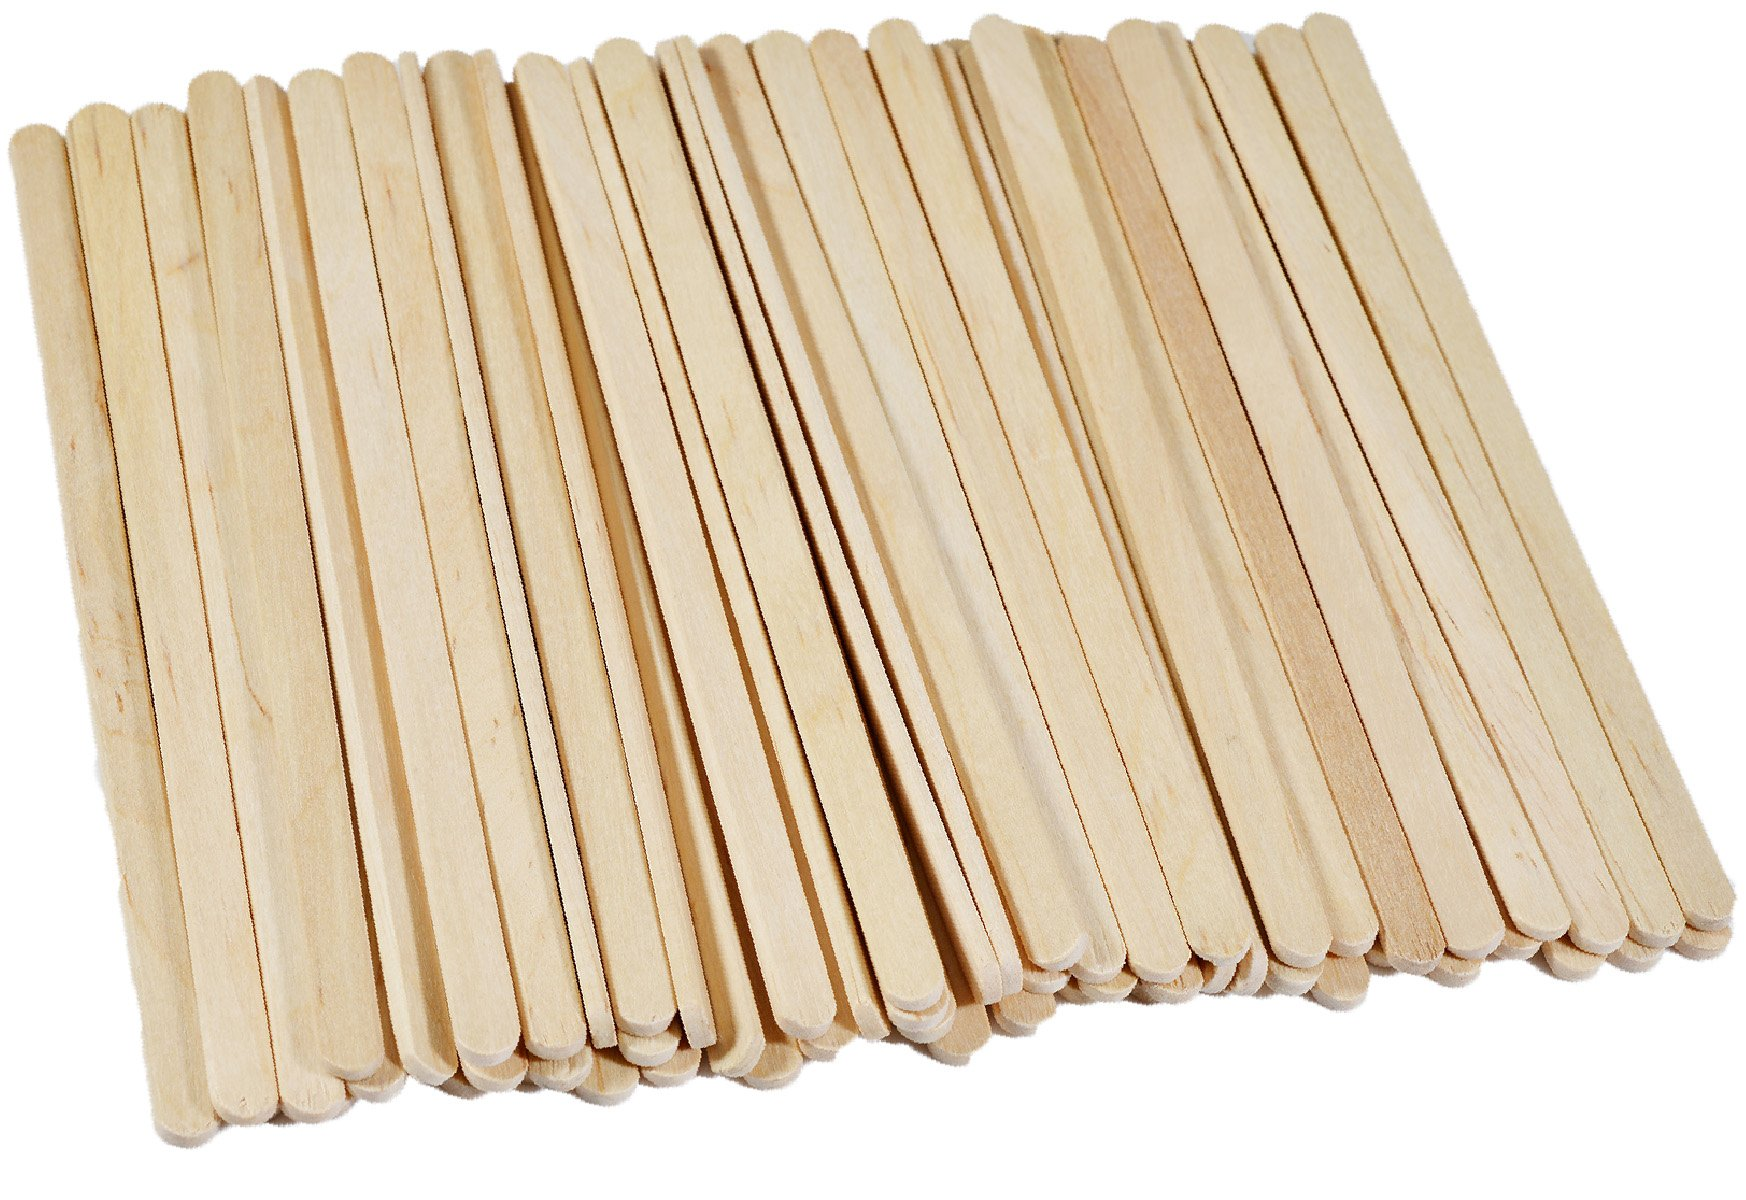 Disposable Birchwood Wooden Coffee Stir Sticks Stirrers Wood Tea Beverage Stir Stick Stirrer,5.5 Inch Length,0.25 Inch Width,500 Pcs (500)